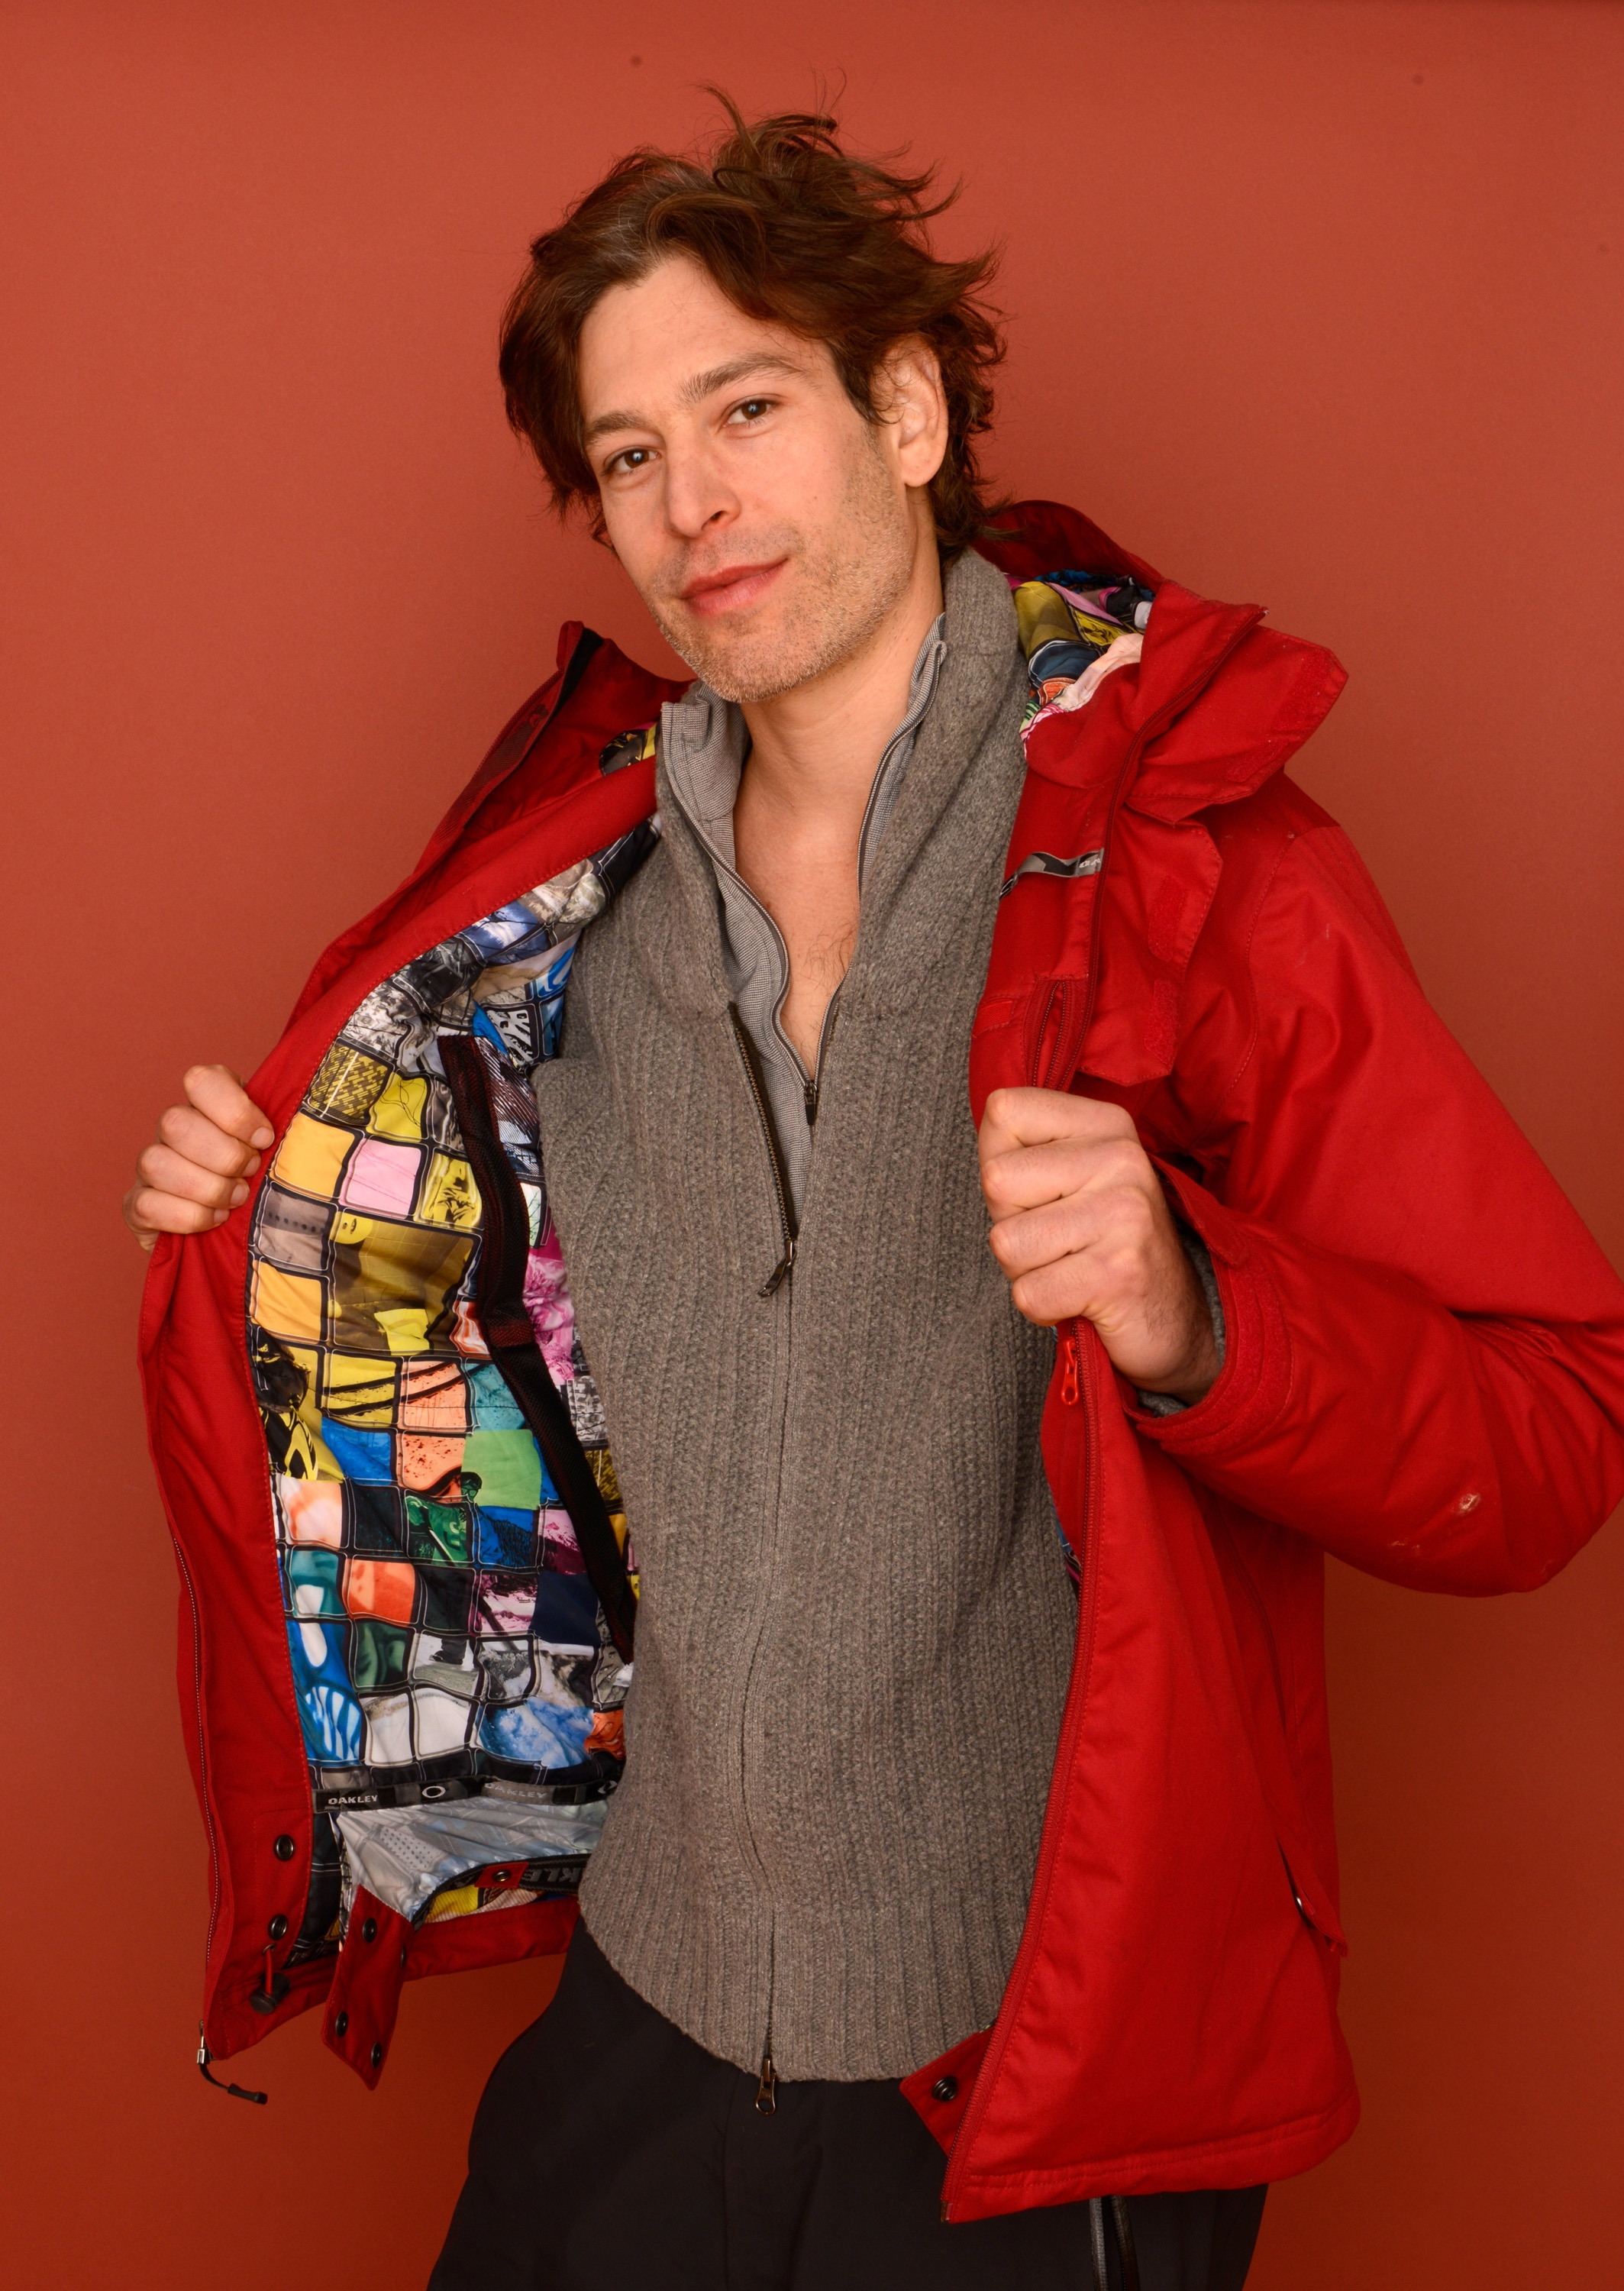 matisyahu talks about his new religious outlook and